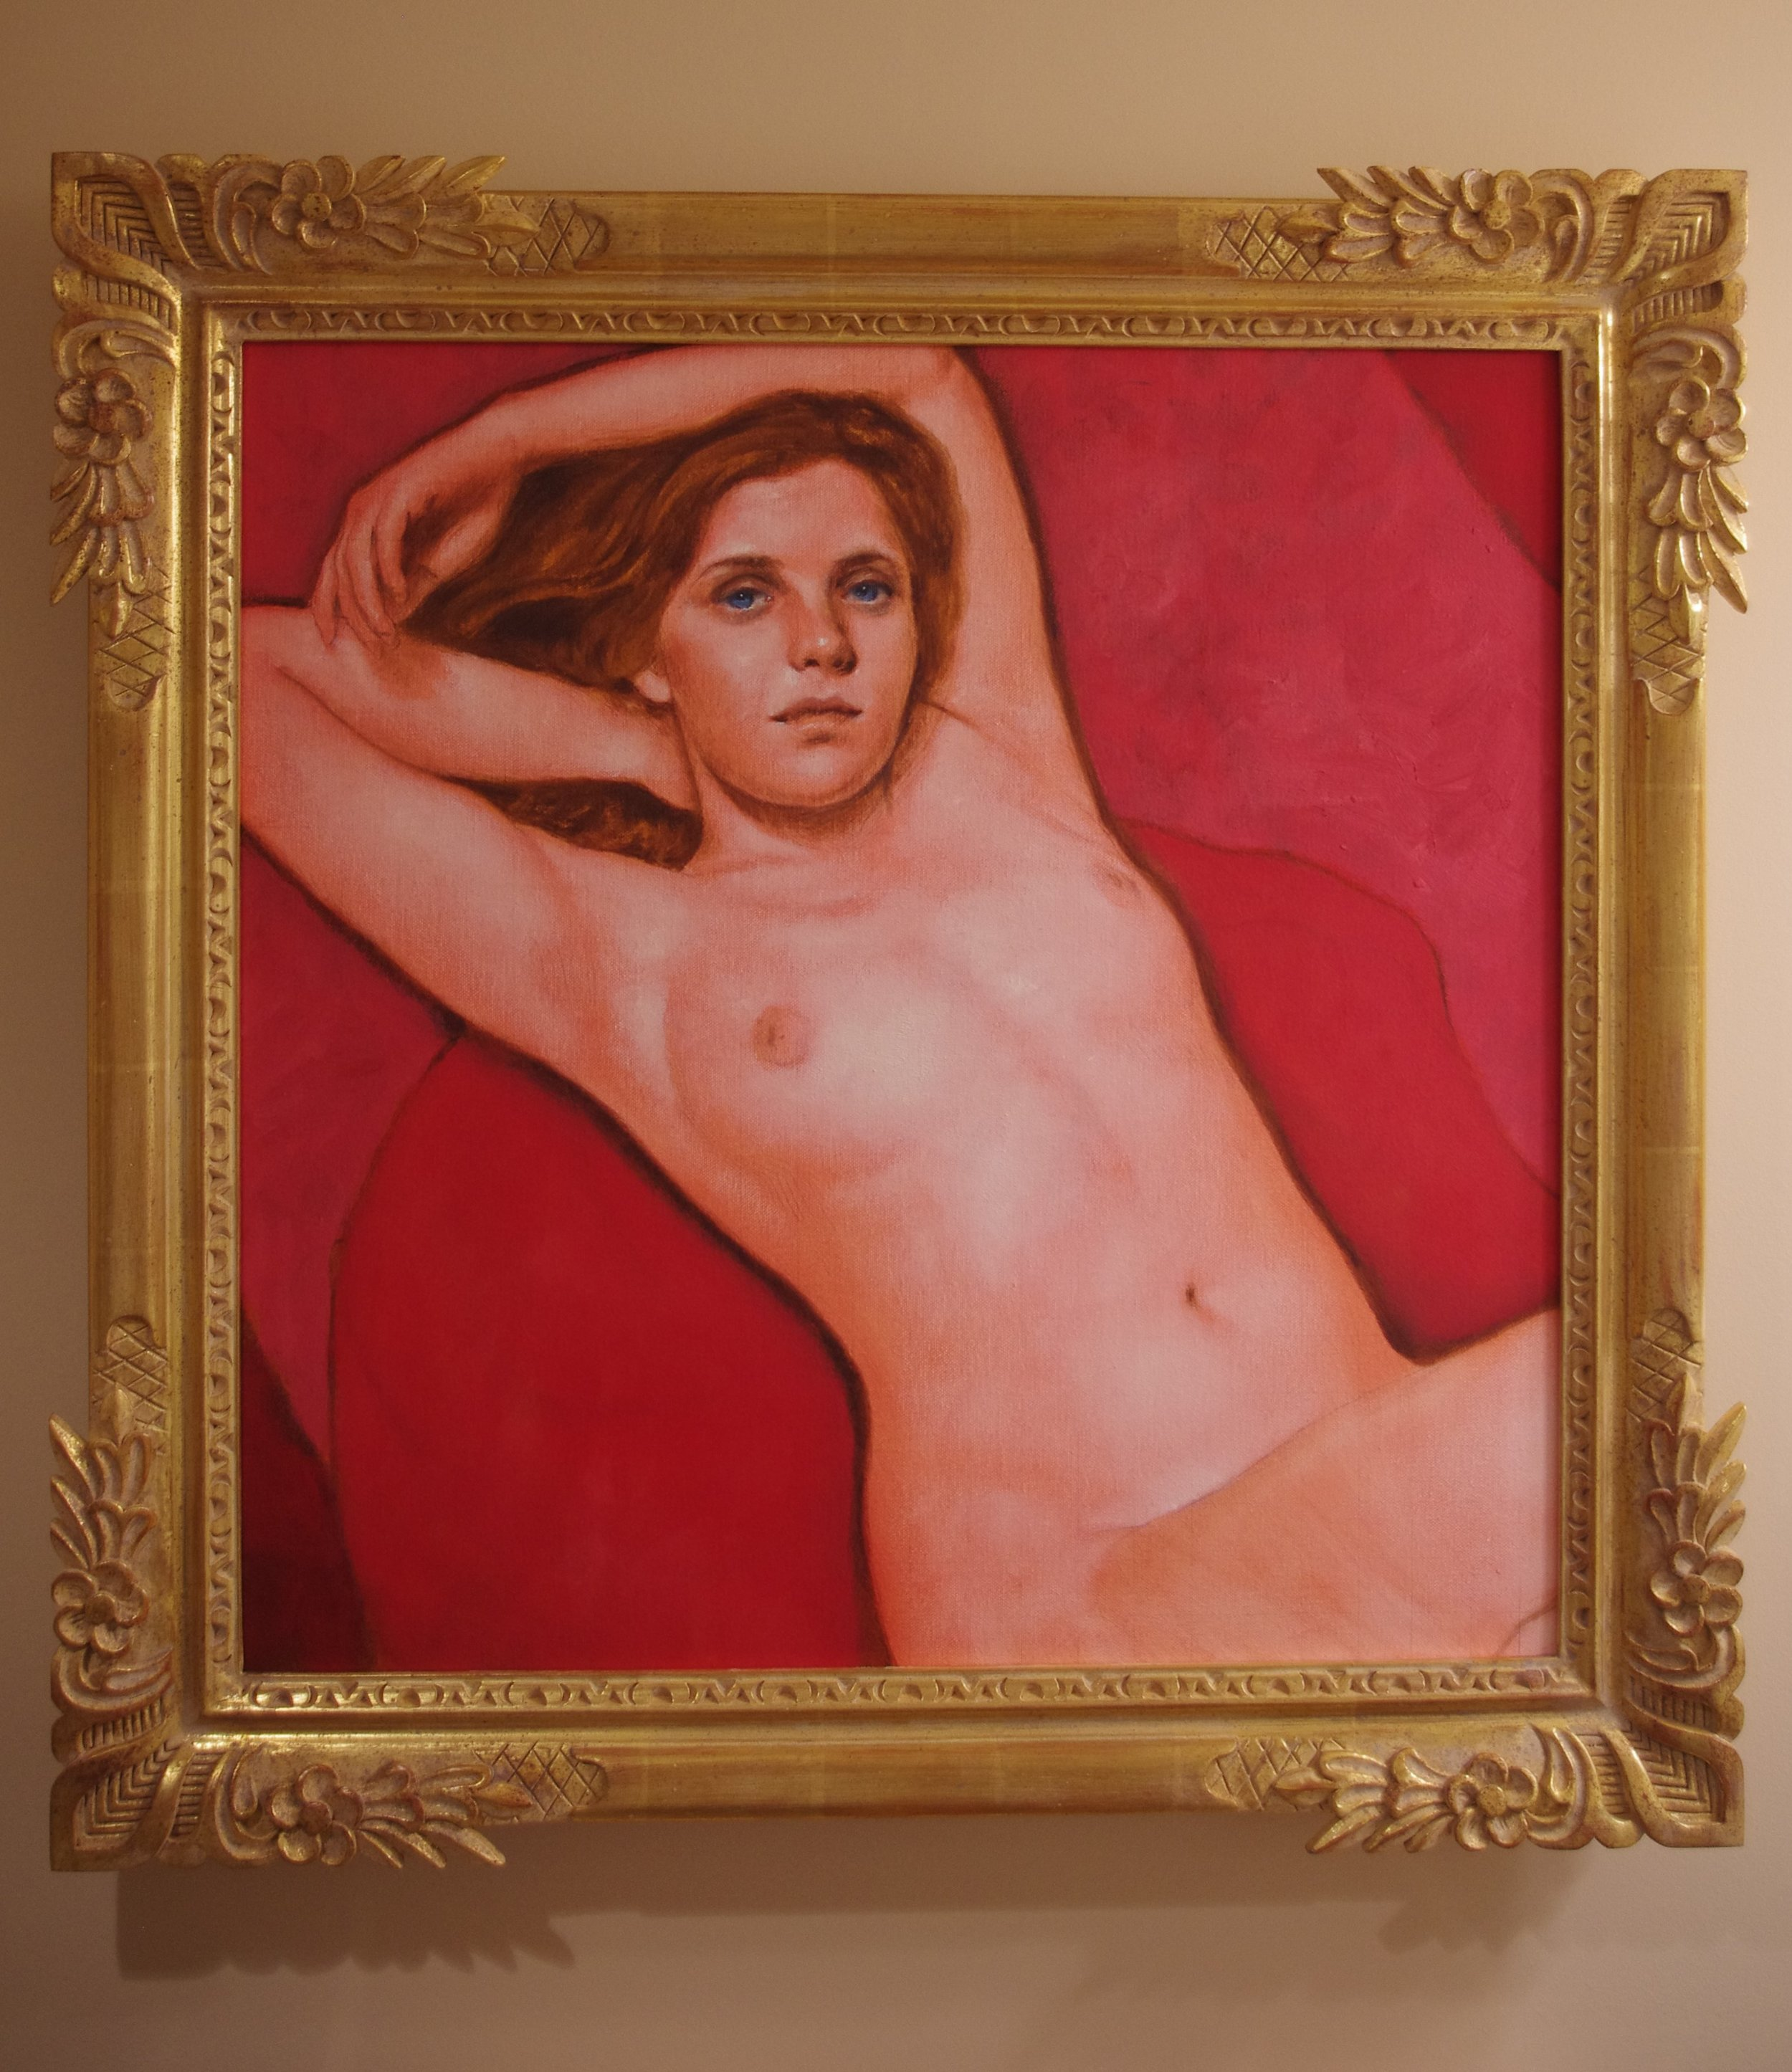 Daniel Maidman |  Pink Portrait of Syrie  | oil on canvas | 24x24 inches